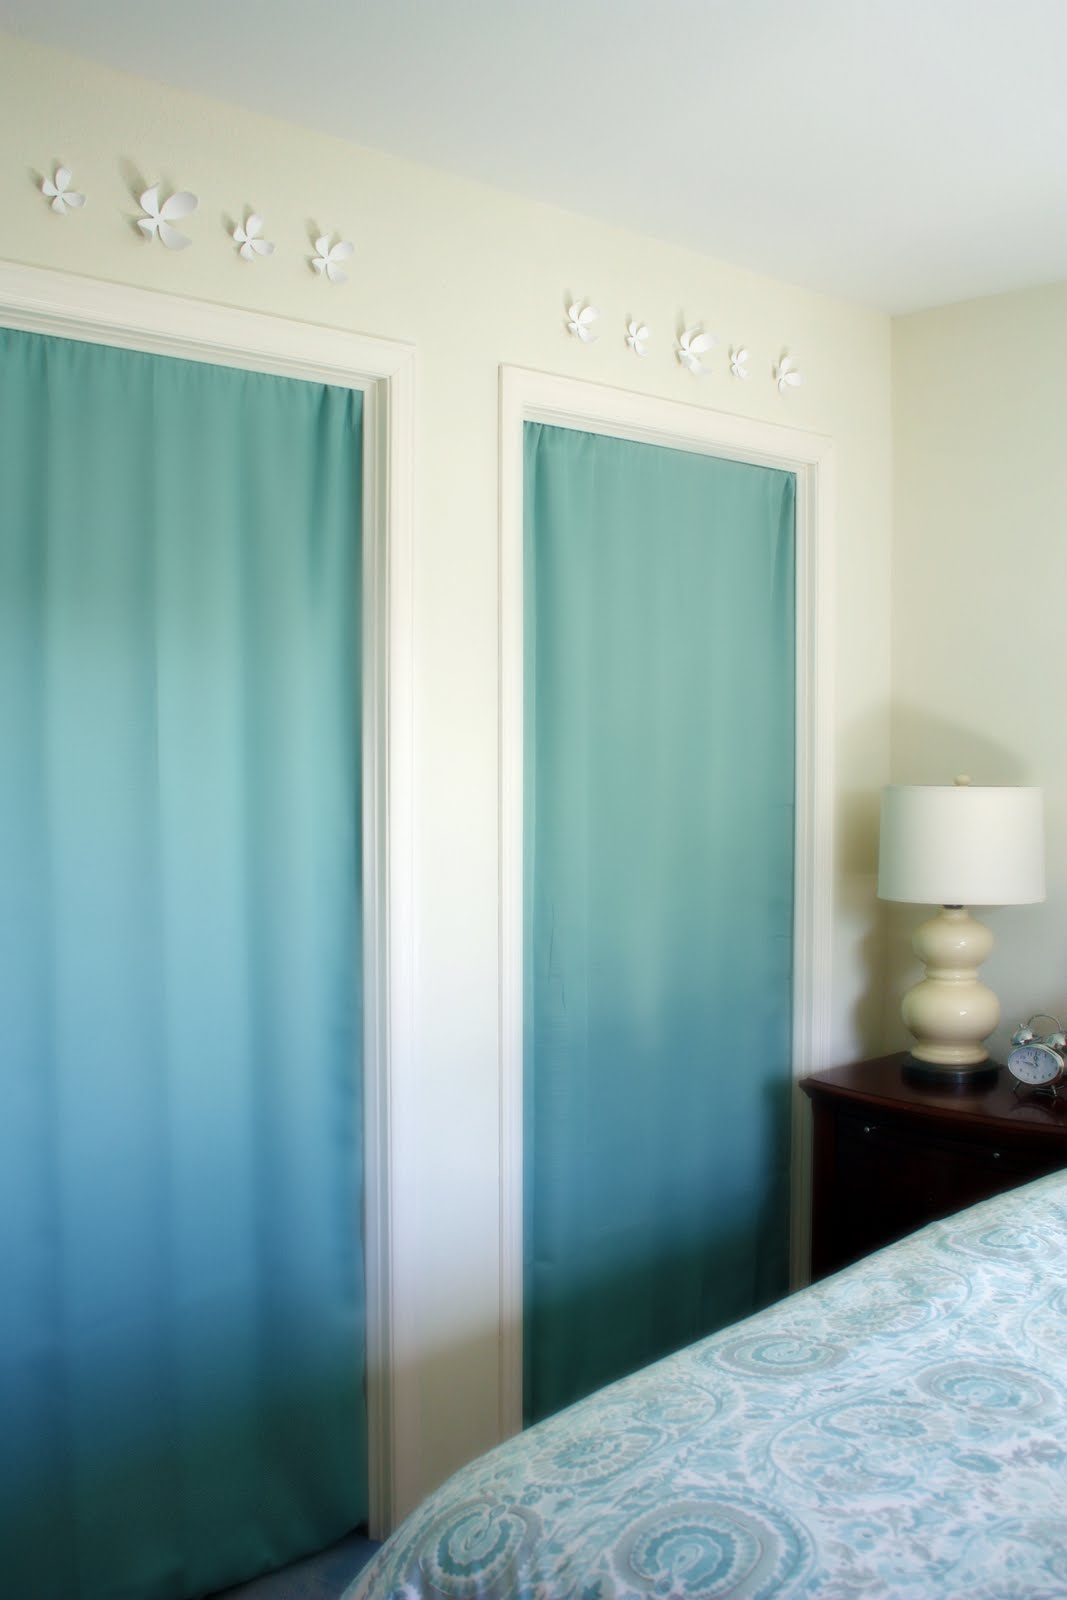 Closet Curtain Iheart Organizing September Featured Space Bedroom Conquering